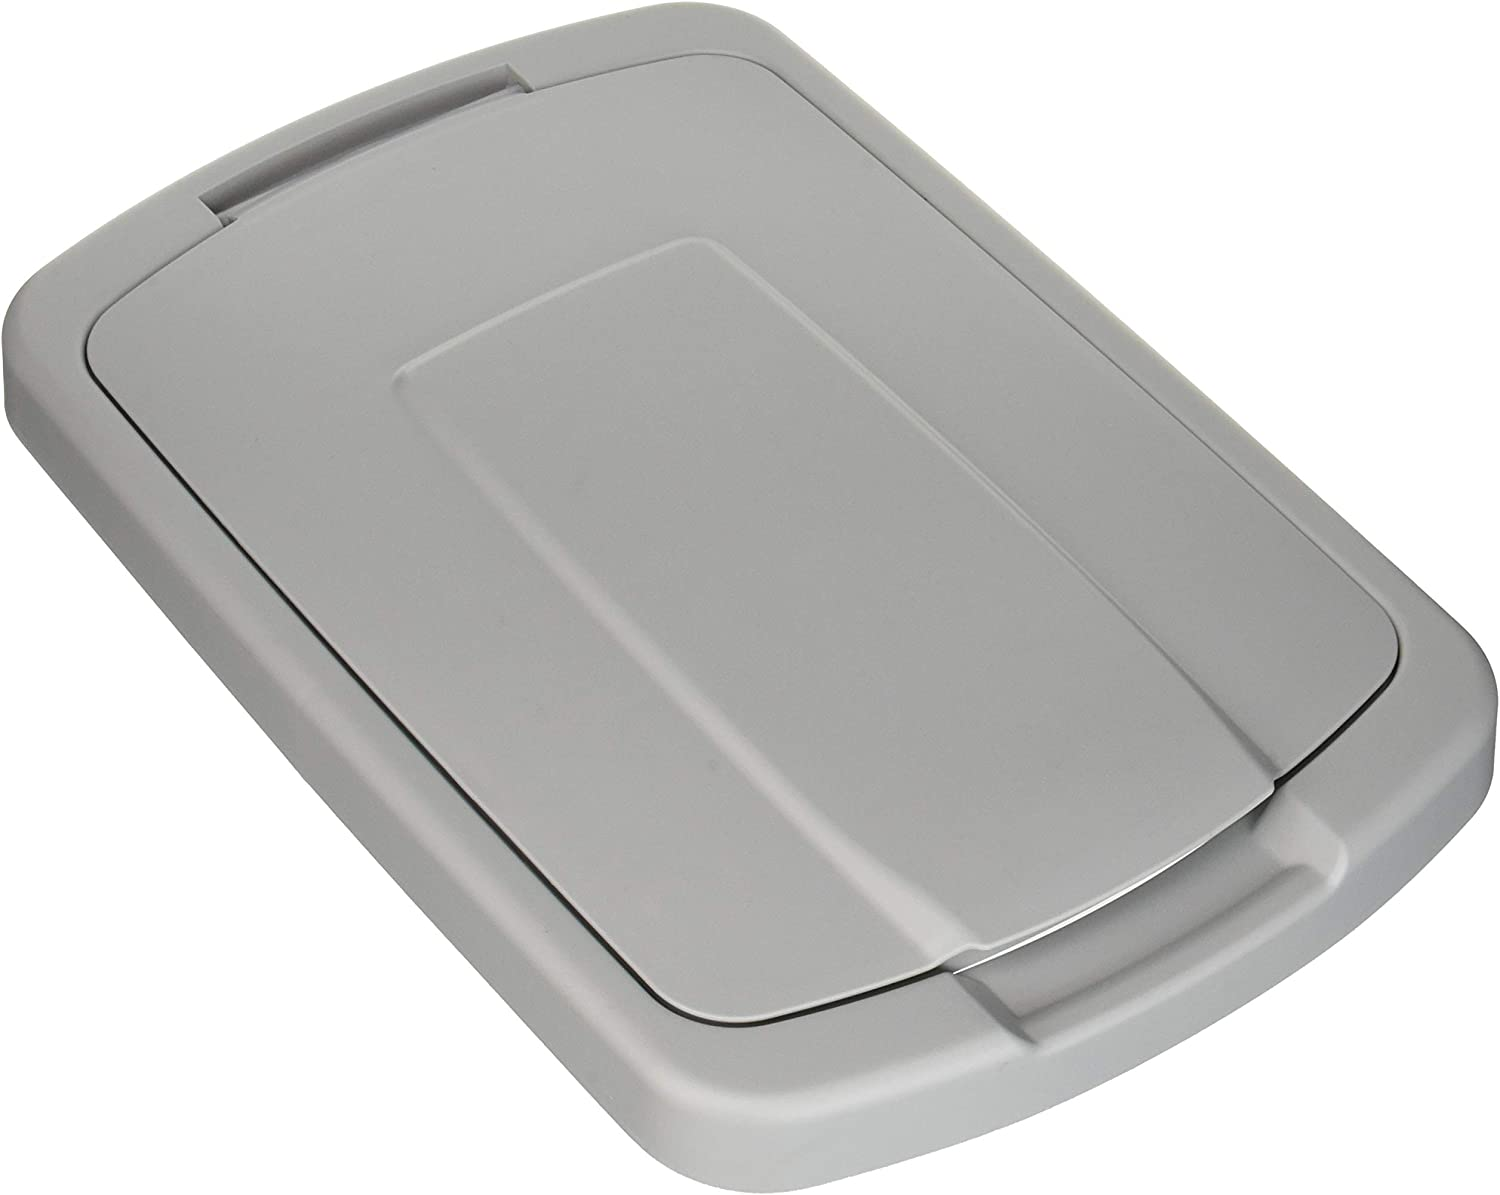 Knape & Vogt QT35LB-PT Trash Can Lid, 1.31-Inch by 14.5-Inch by 9.56-Inch